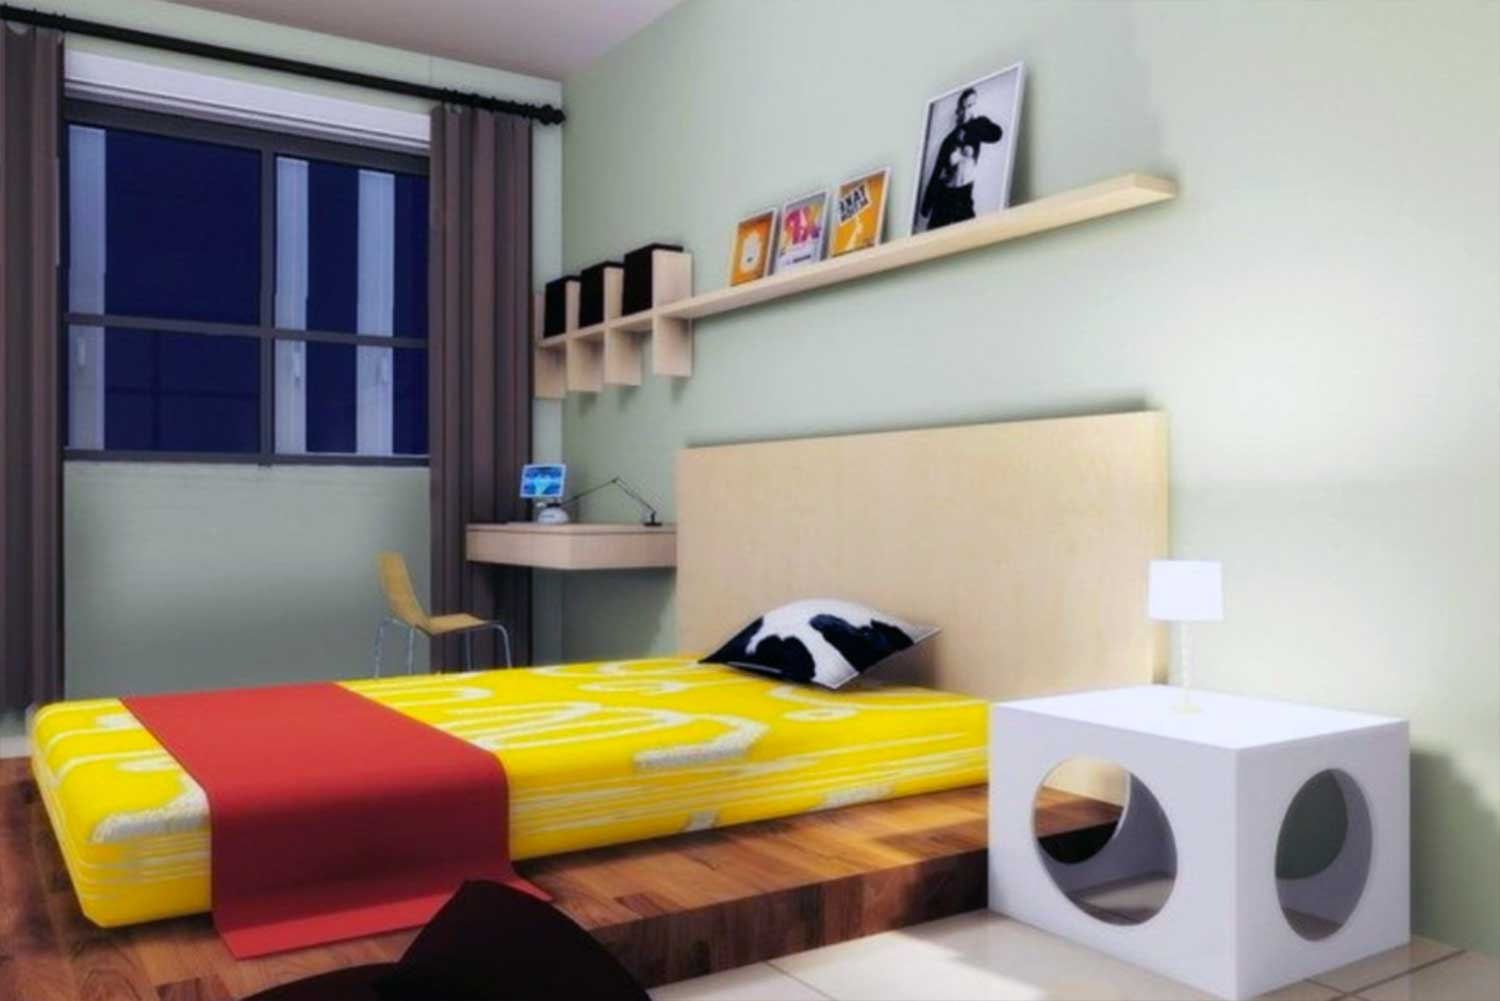 Japanese Inspired Beds Bedroom Ideas Japanese Style Inspired My Lovely Home